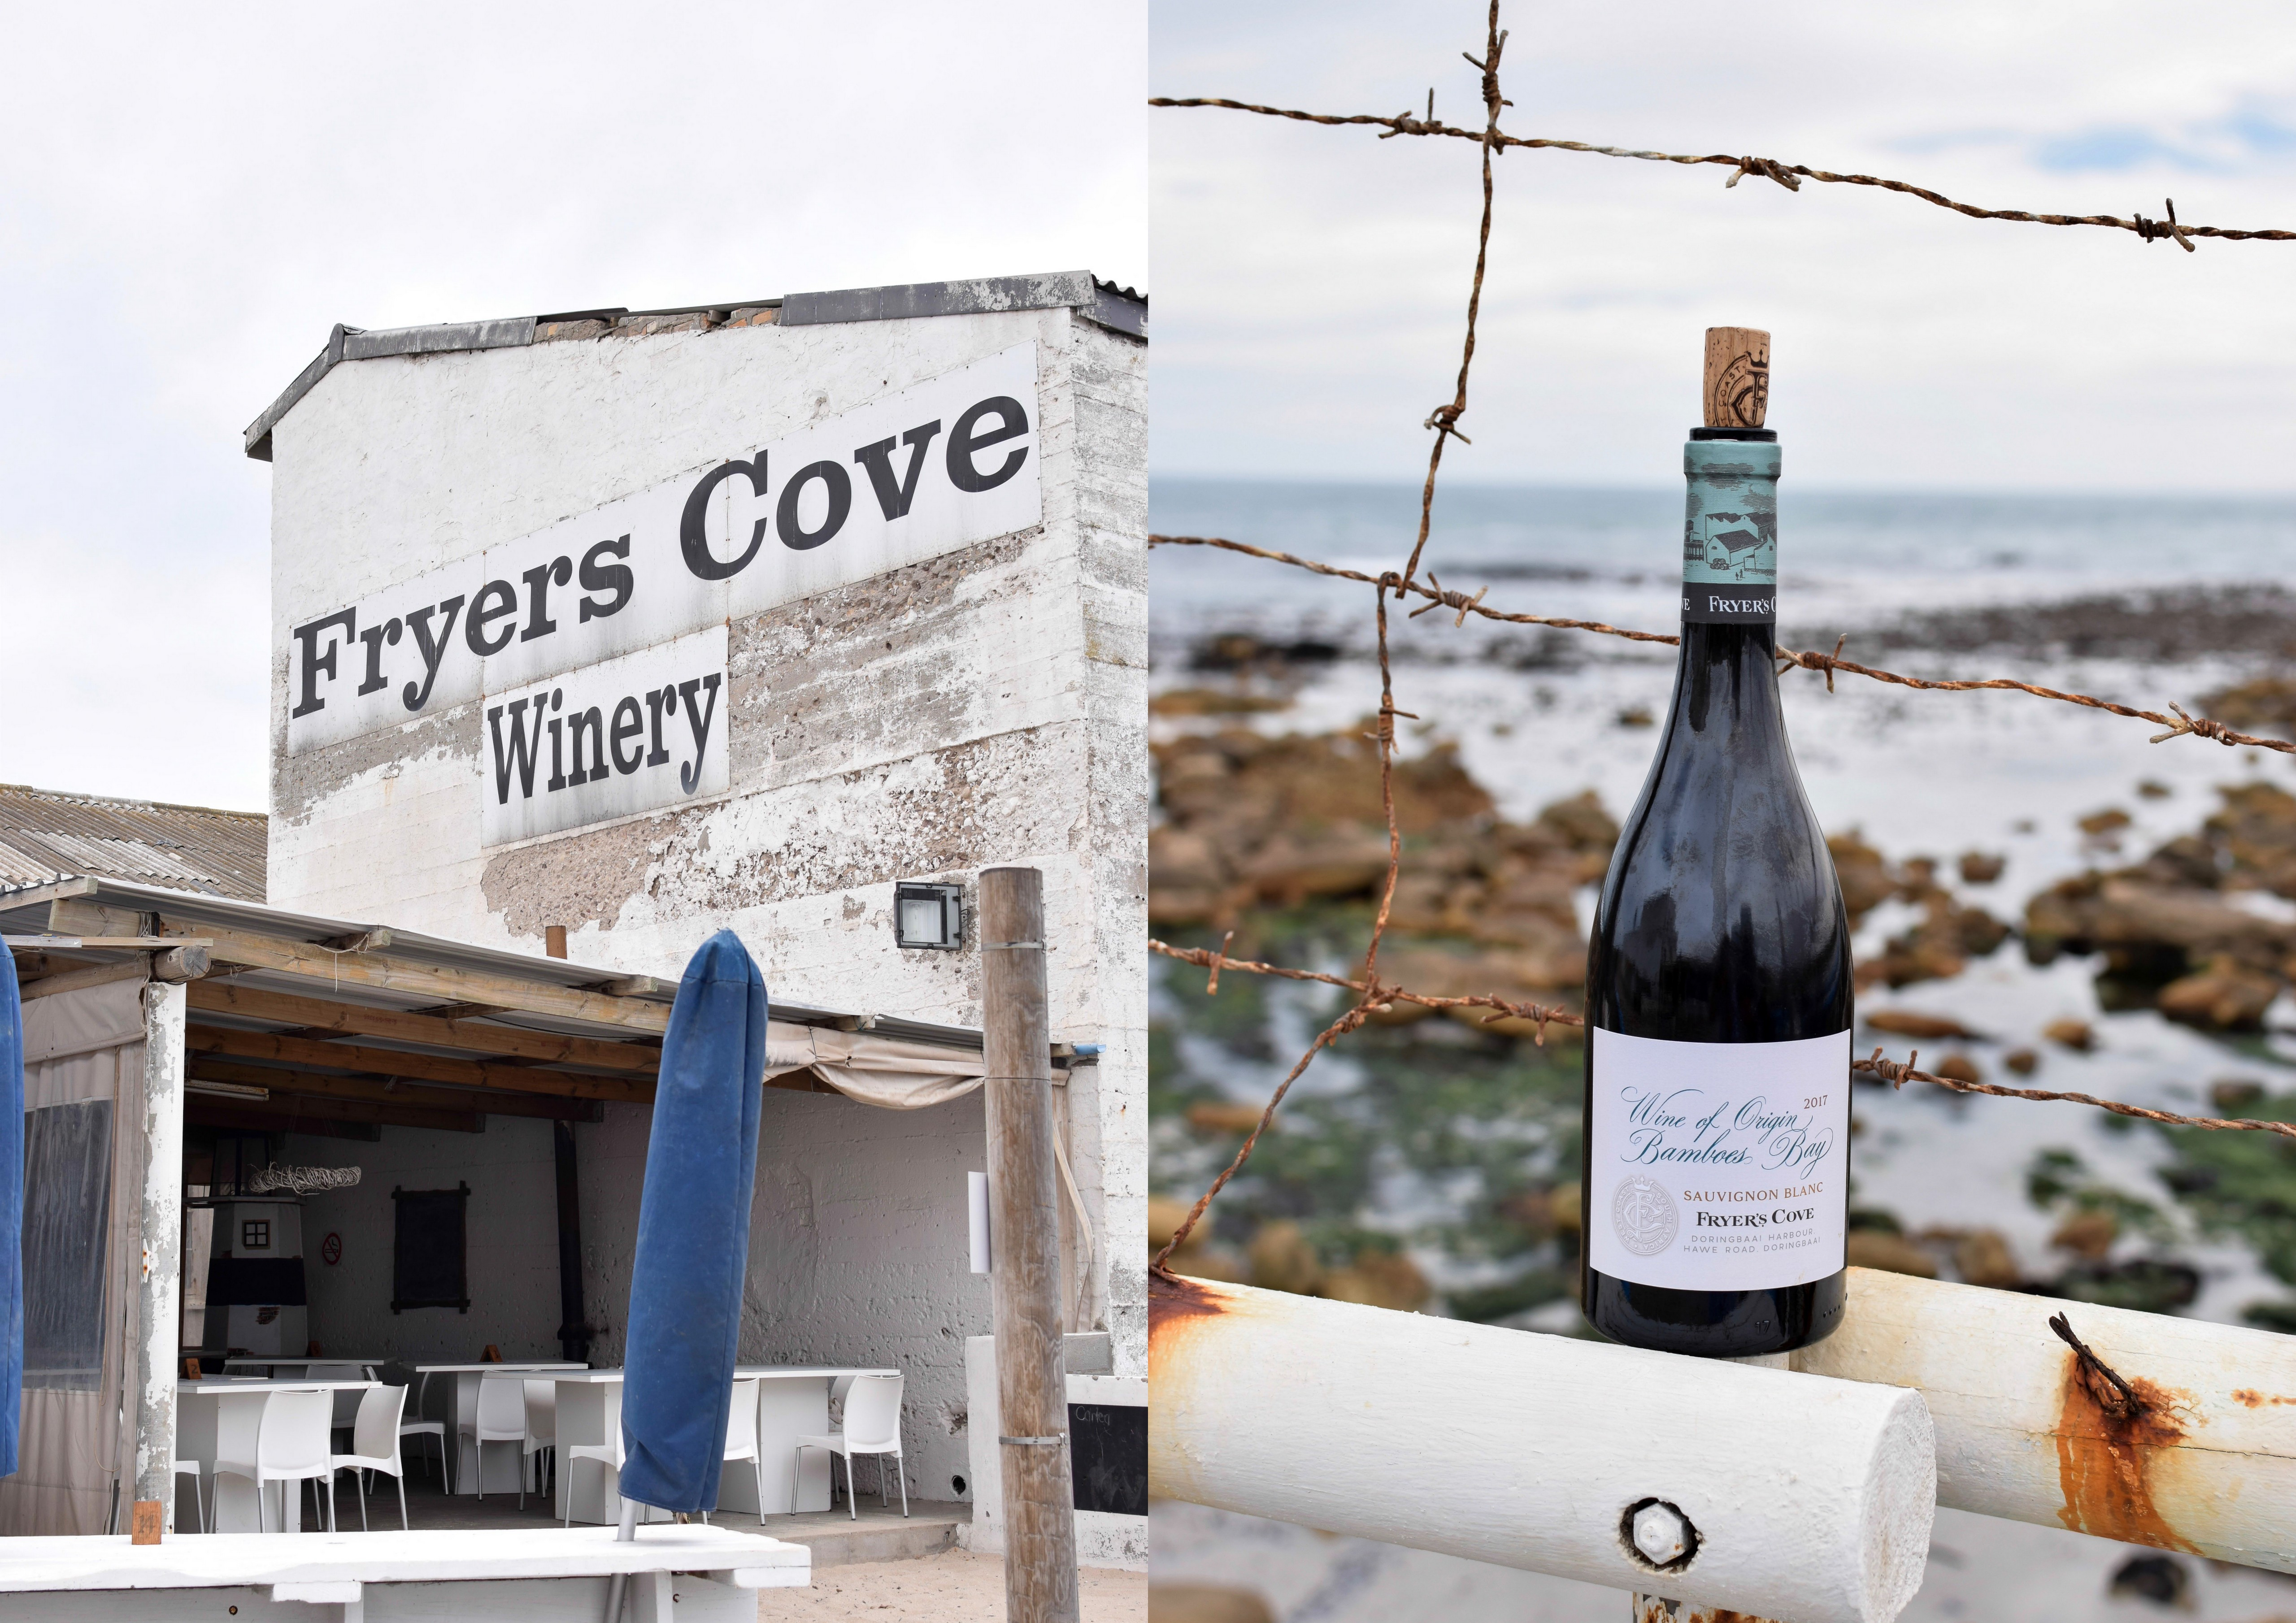 FRYER'S COVE WINERY